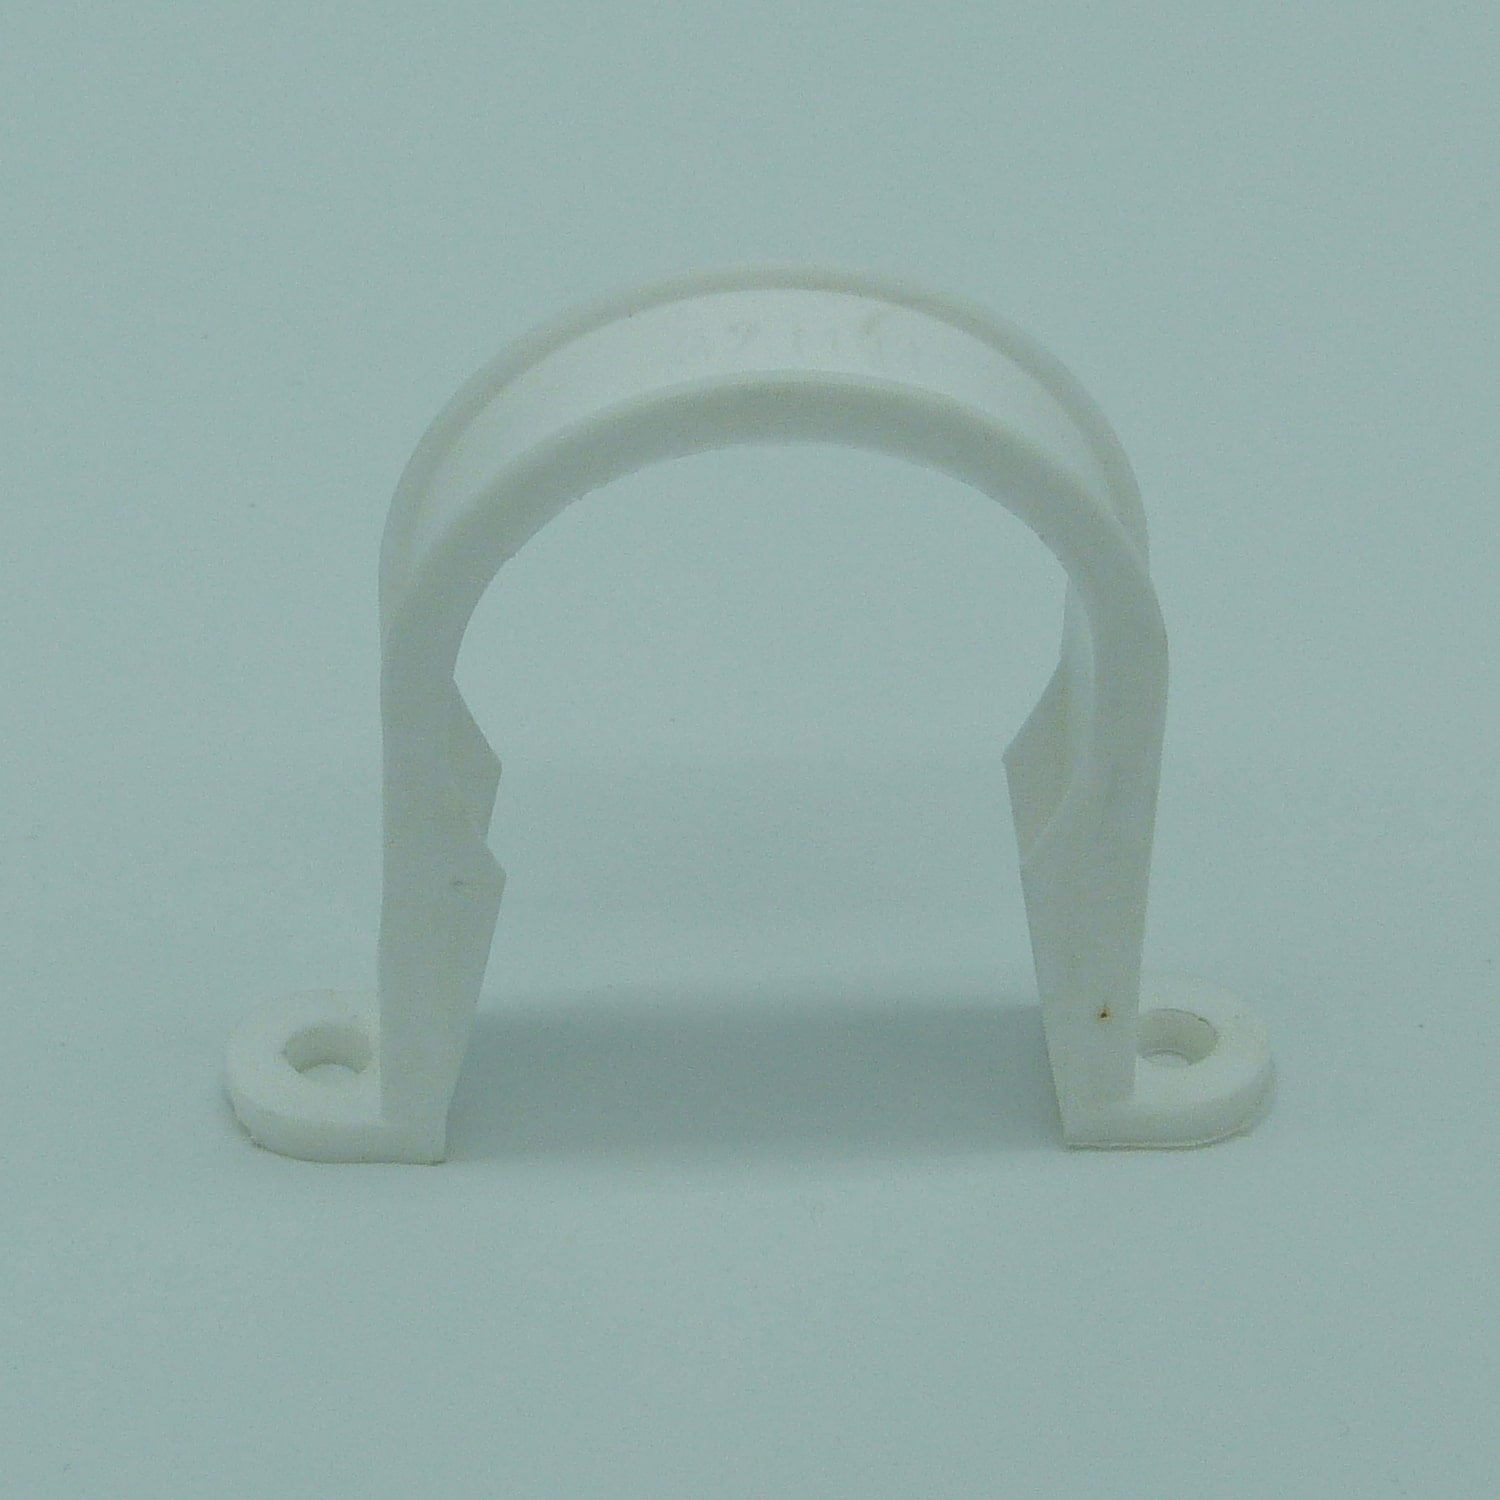 32mm pipe clip white